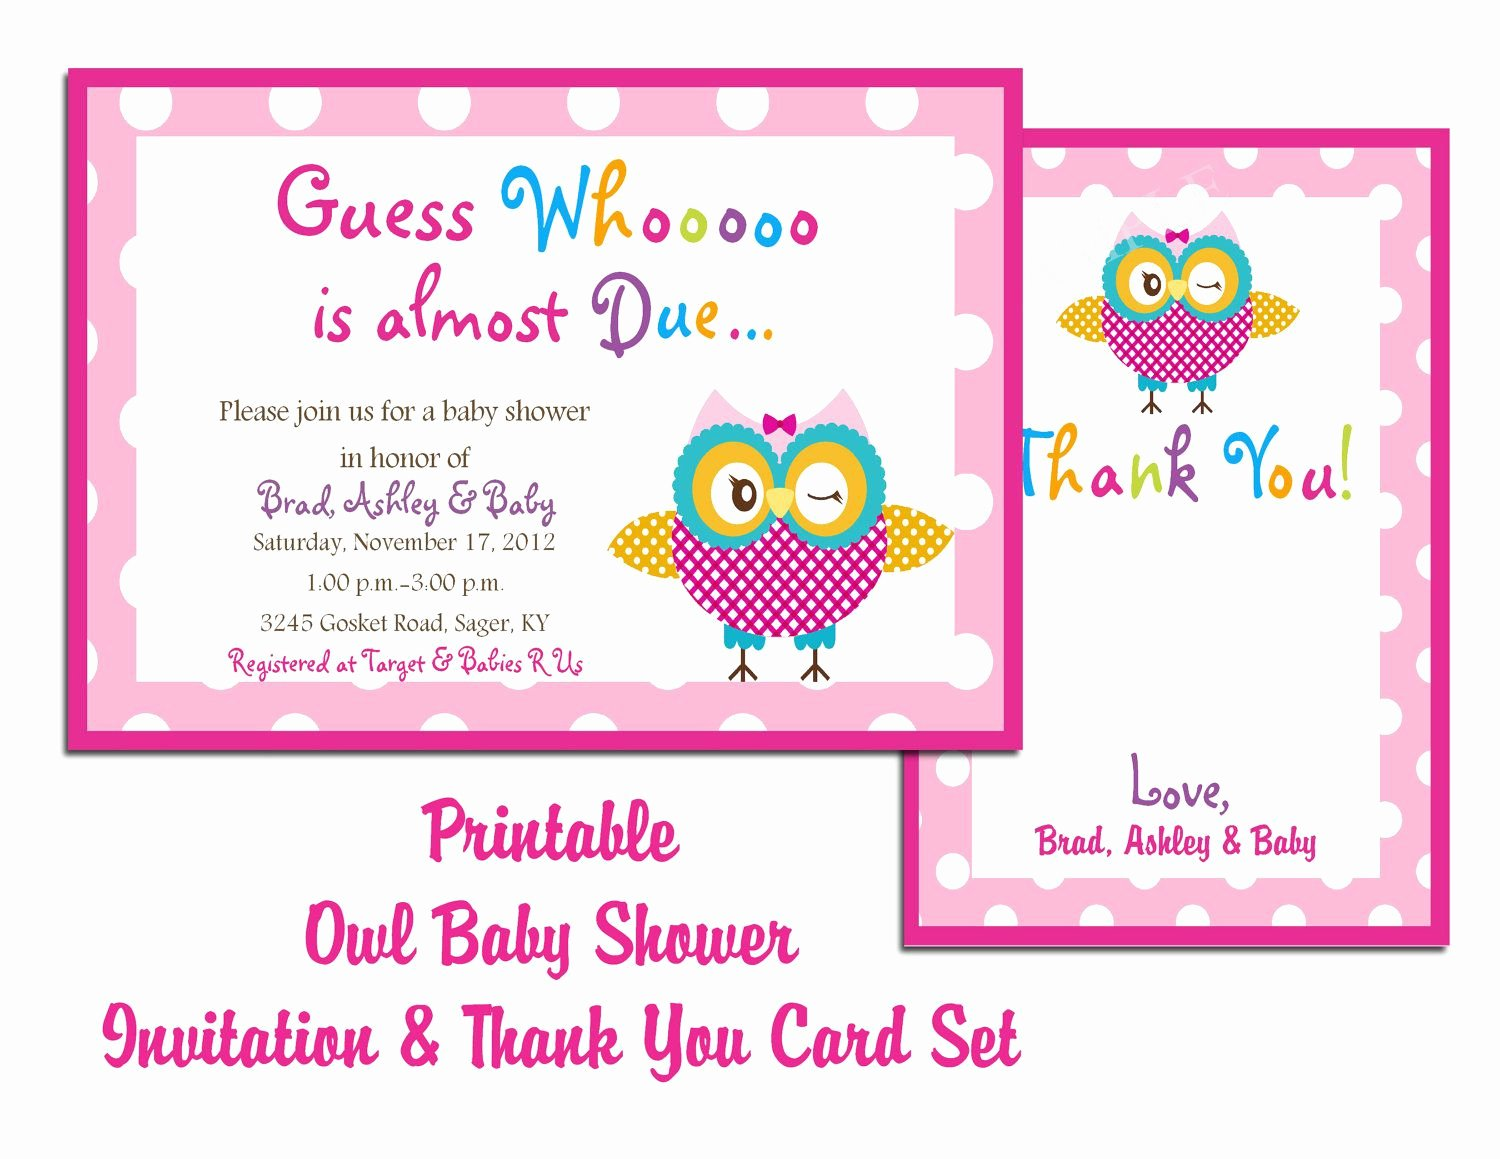 Baby Shower Invitation Template Free Elegant Baby Shower Invitation Baby Shower Invitation Templates